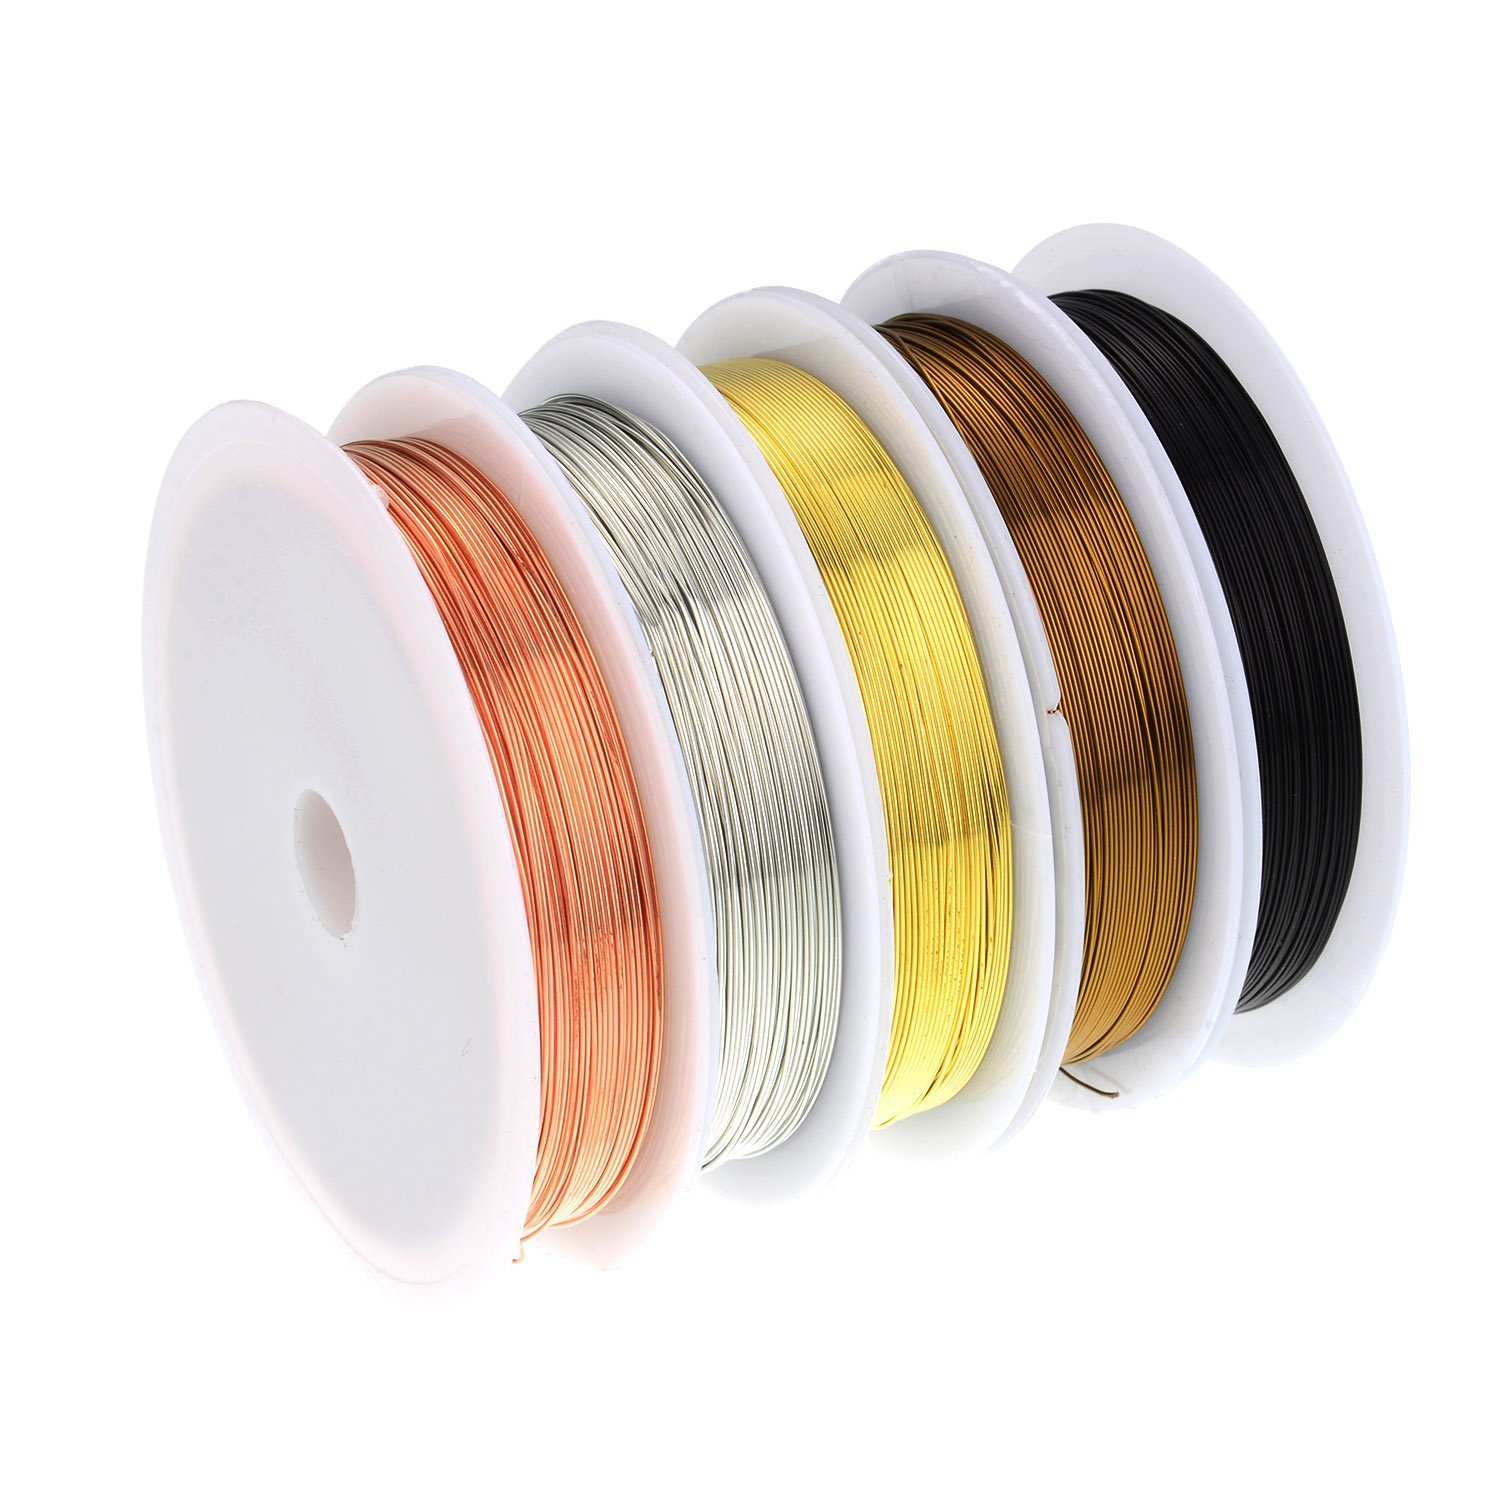 5 Rolls Copper Wire Tarnish Resistant Jewelry Beading Wire for Jewelry Making, 5 Assorted Colors M-Aimee Jewelry-Making Tools-5